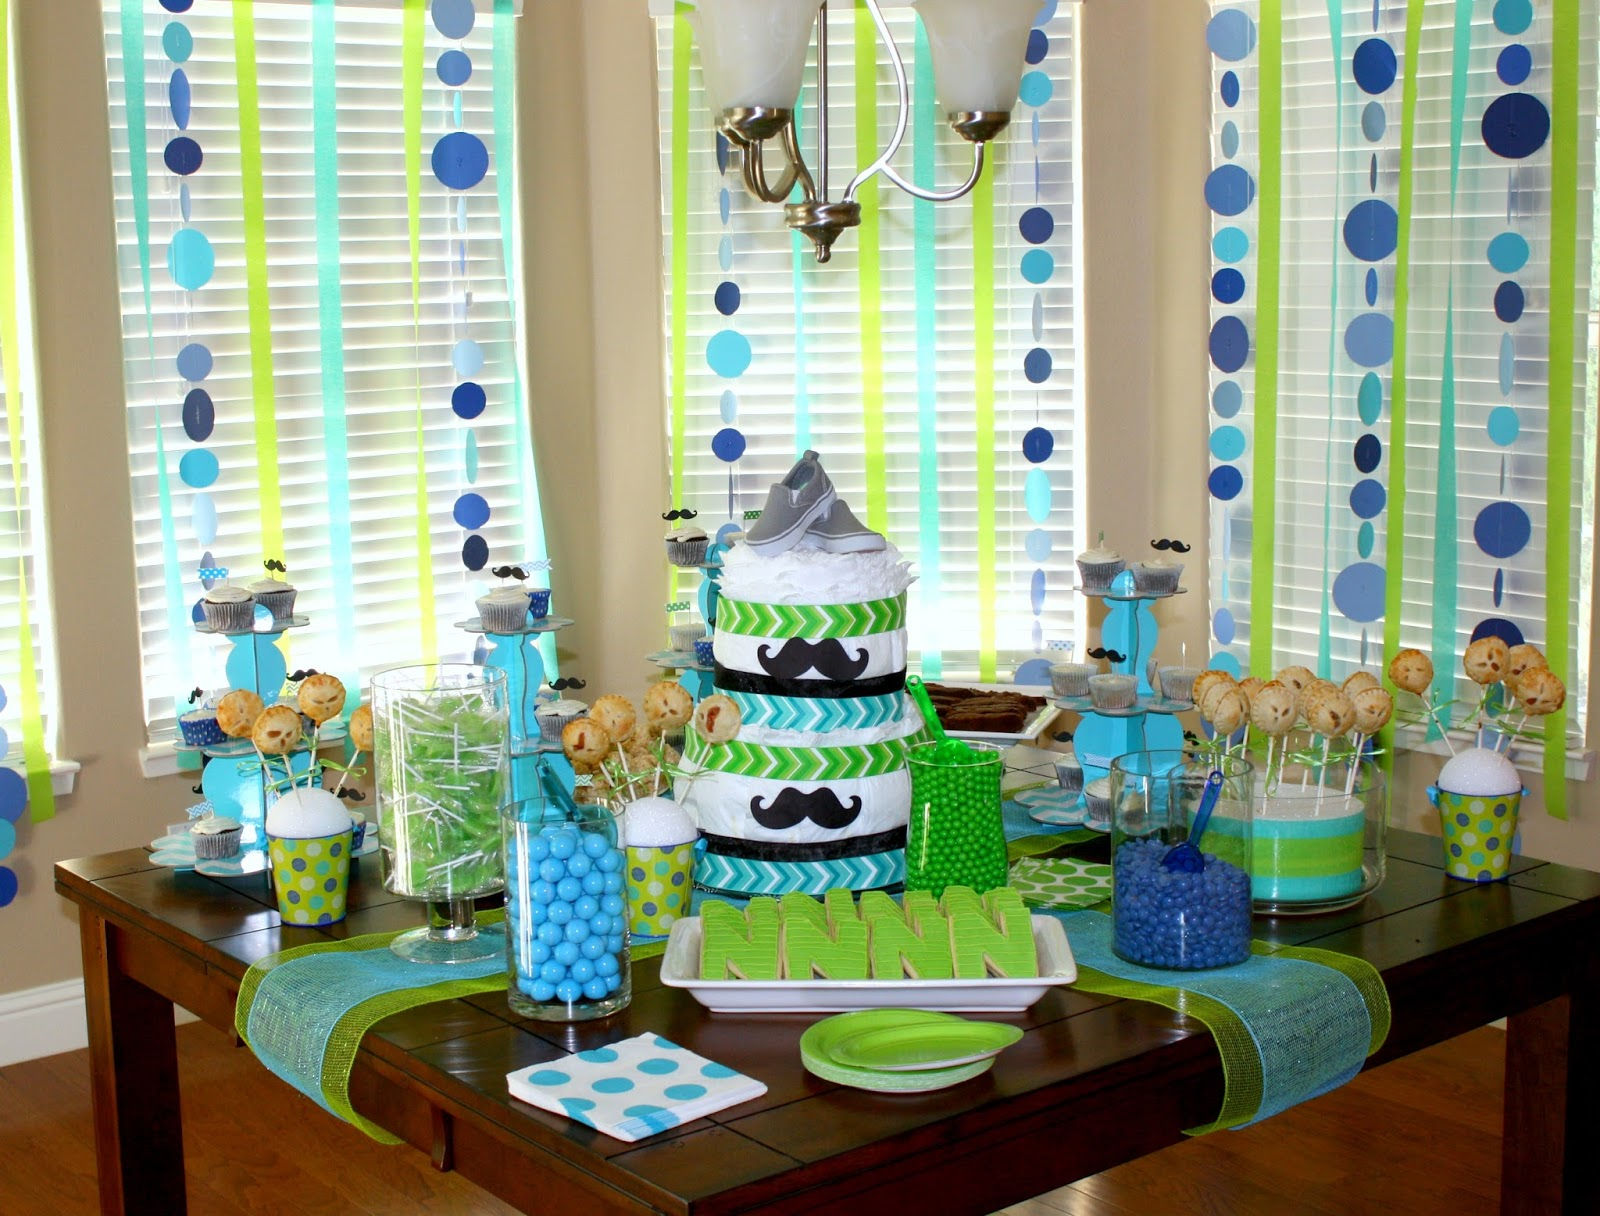 Fabulous Nice Blue And Green Baby Shower Decorations 18 - Wyllieforgovernor regarding Blue And Green Baby Shower